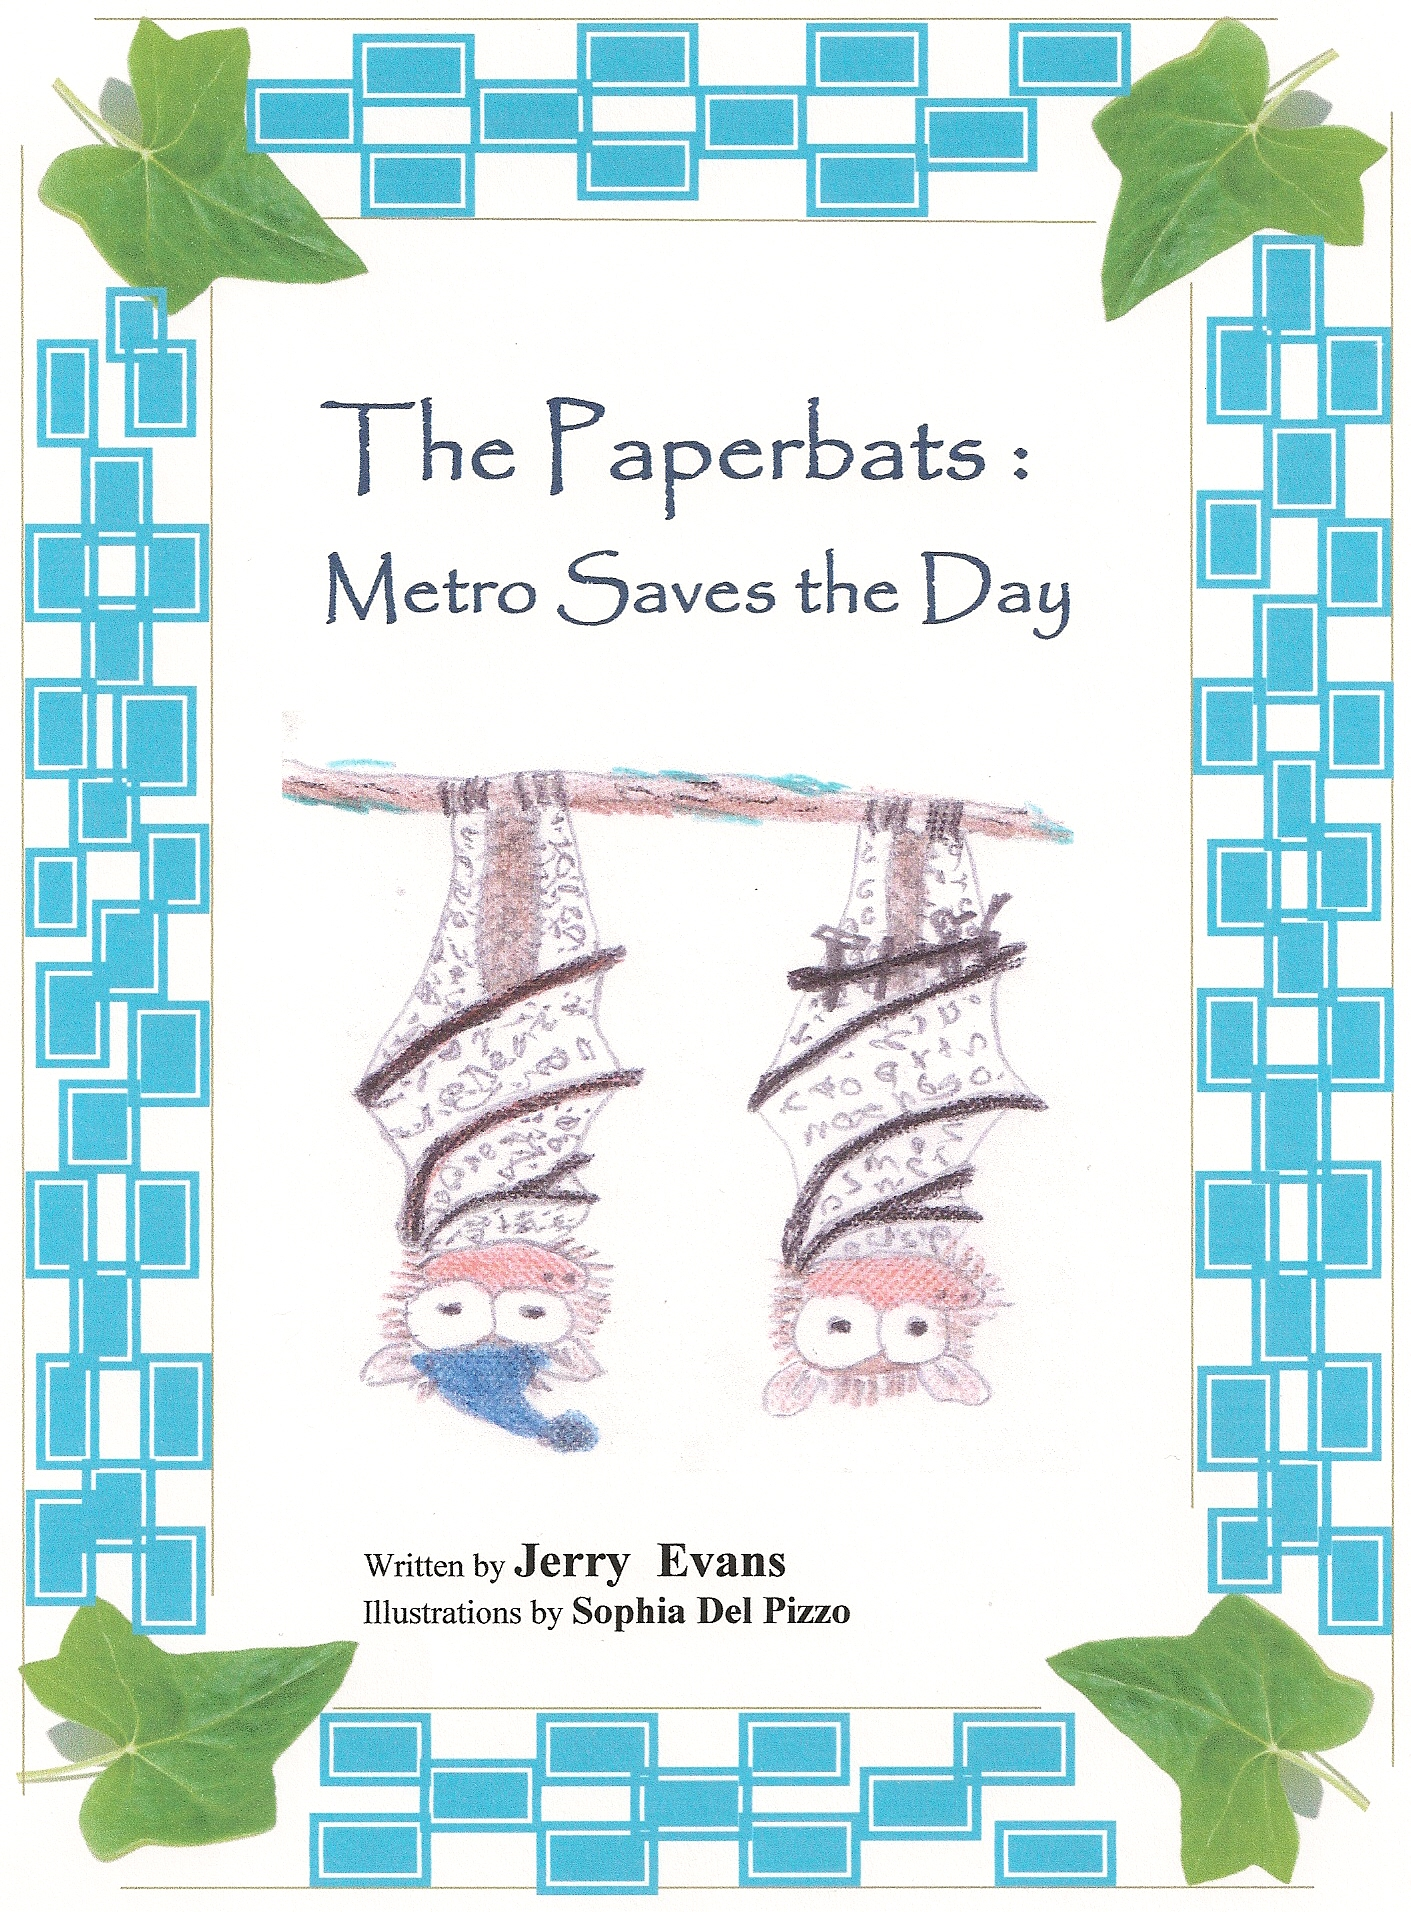 Paperbats 2: Metro Saves the Day